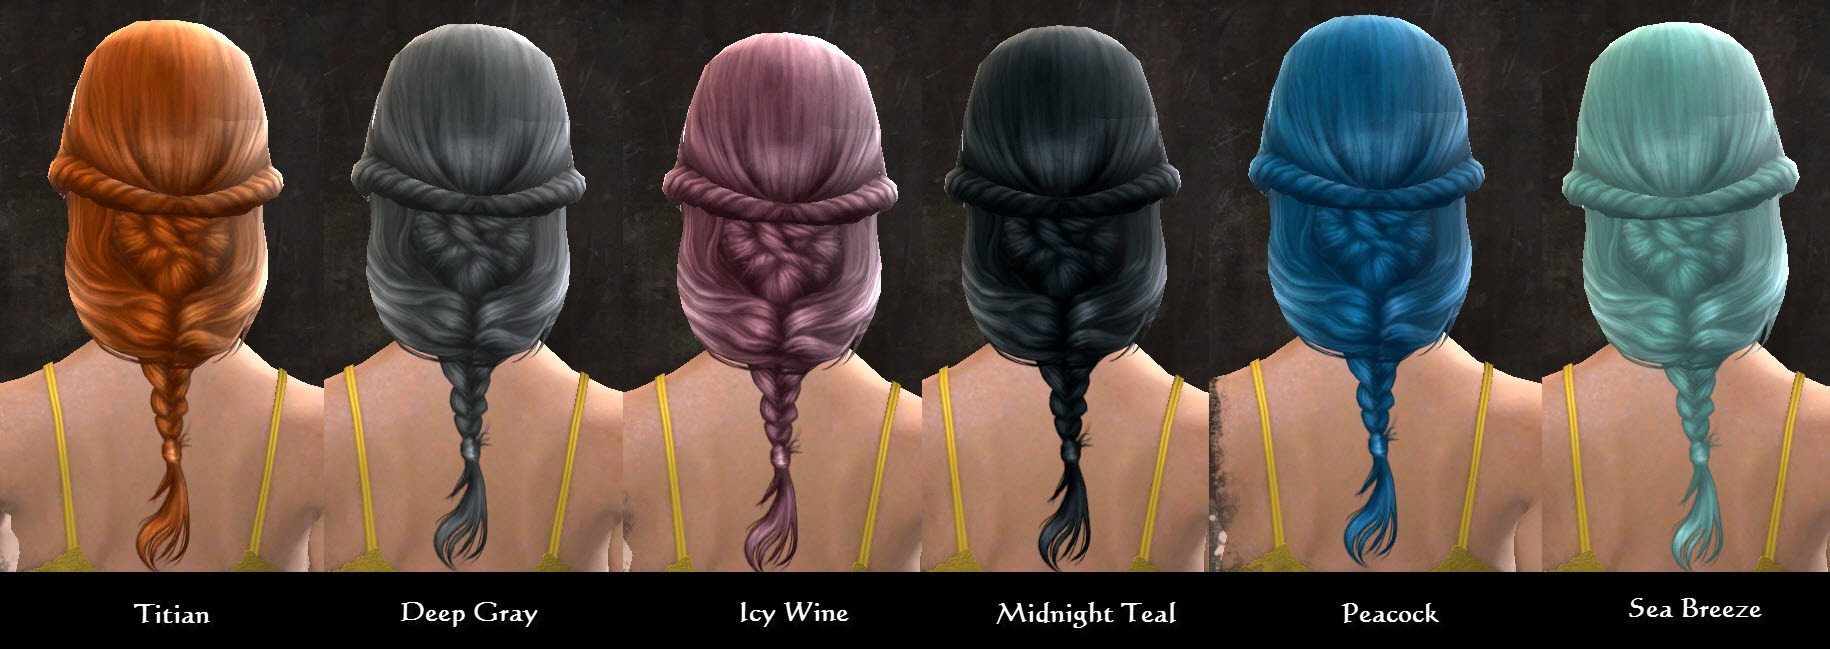 gw2-april-18-new-hair-colors